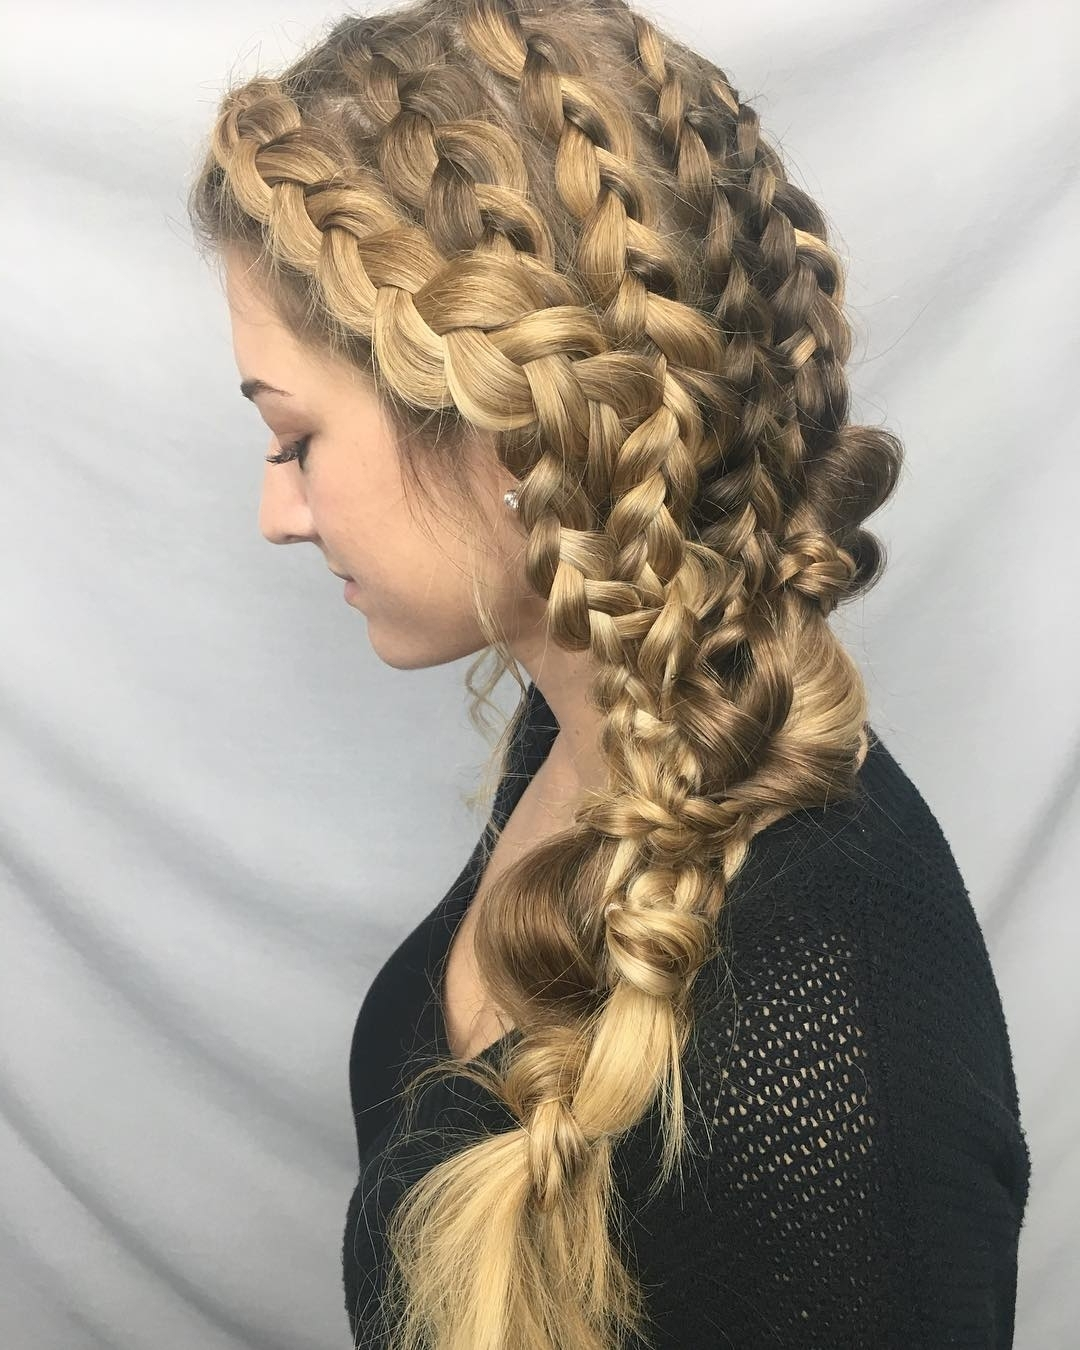 Popular Swooped Up Playful Ponytail Braids With Cuffs And Beads In Latest Hairstyles And Haircuts For Women 2018 – The Trending Hairstyles (View 11 of 15)